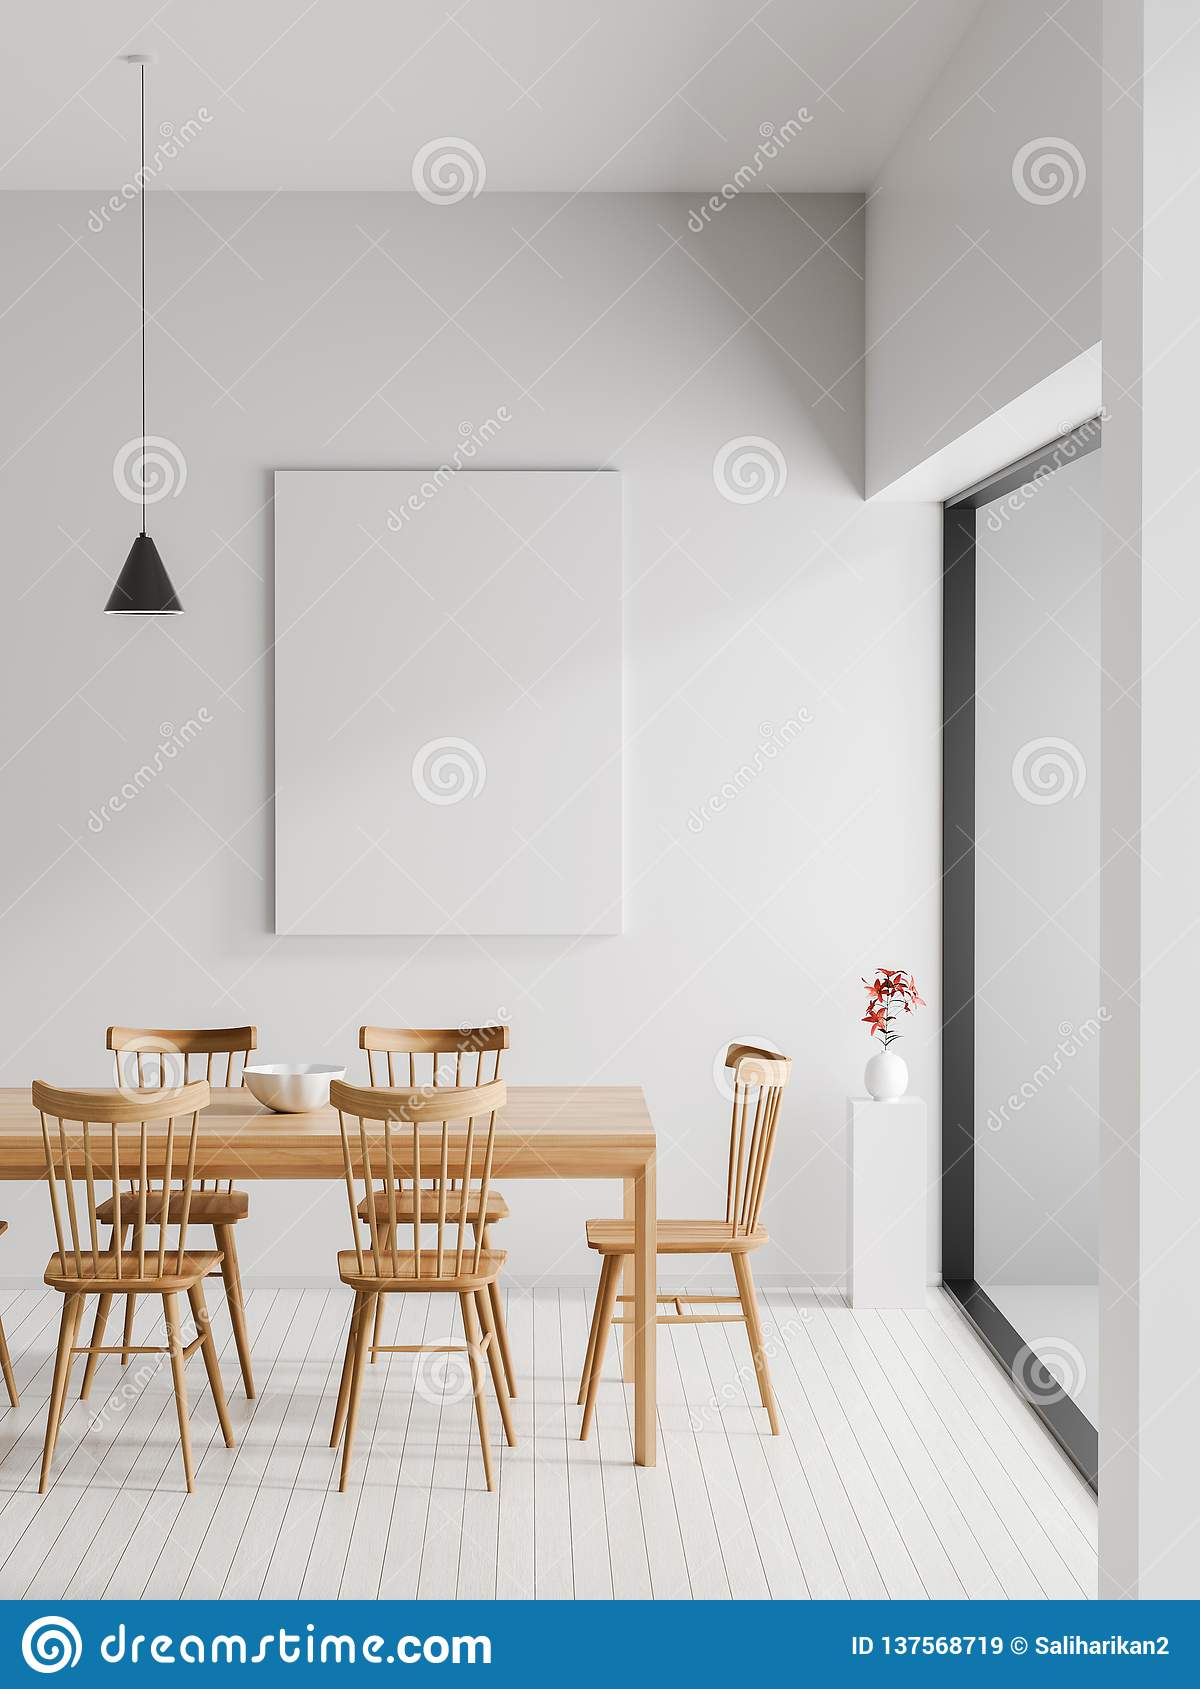 Mock up poster frame in Scandinavian style hipster interior. Minimalist modern dining room. 3D illustration